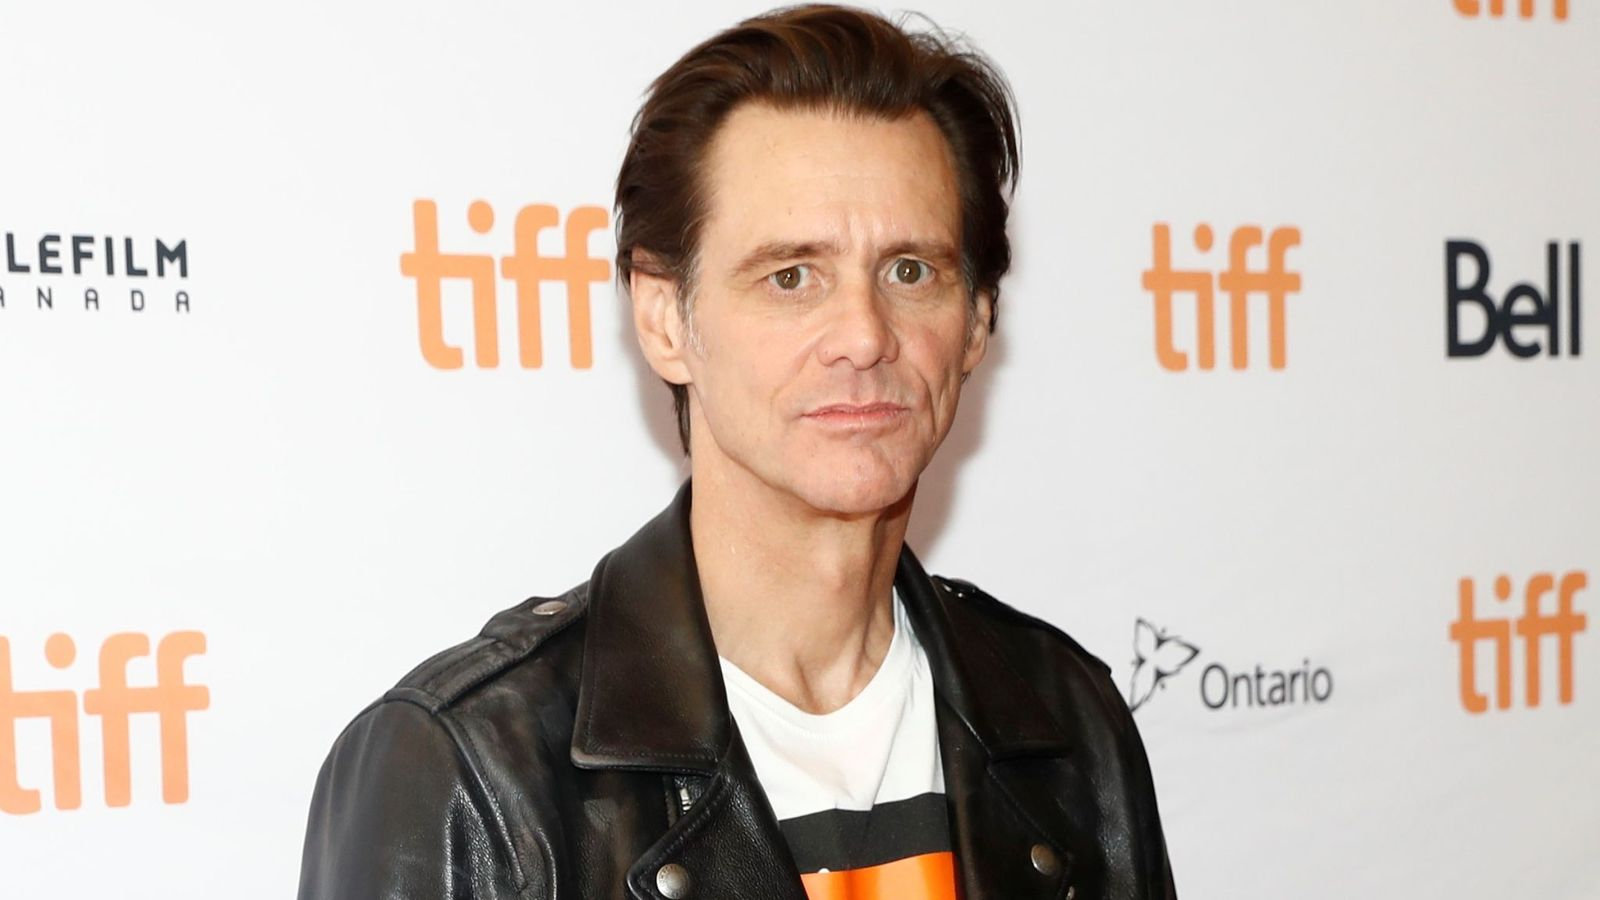 an analysis of jim carrey the actor Carrey regularly posts politically inspired artwork to his twitter account, and is an active voice on political issues actor and comedian jim carrey has always been known for.